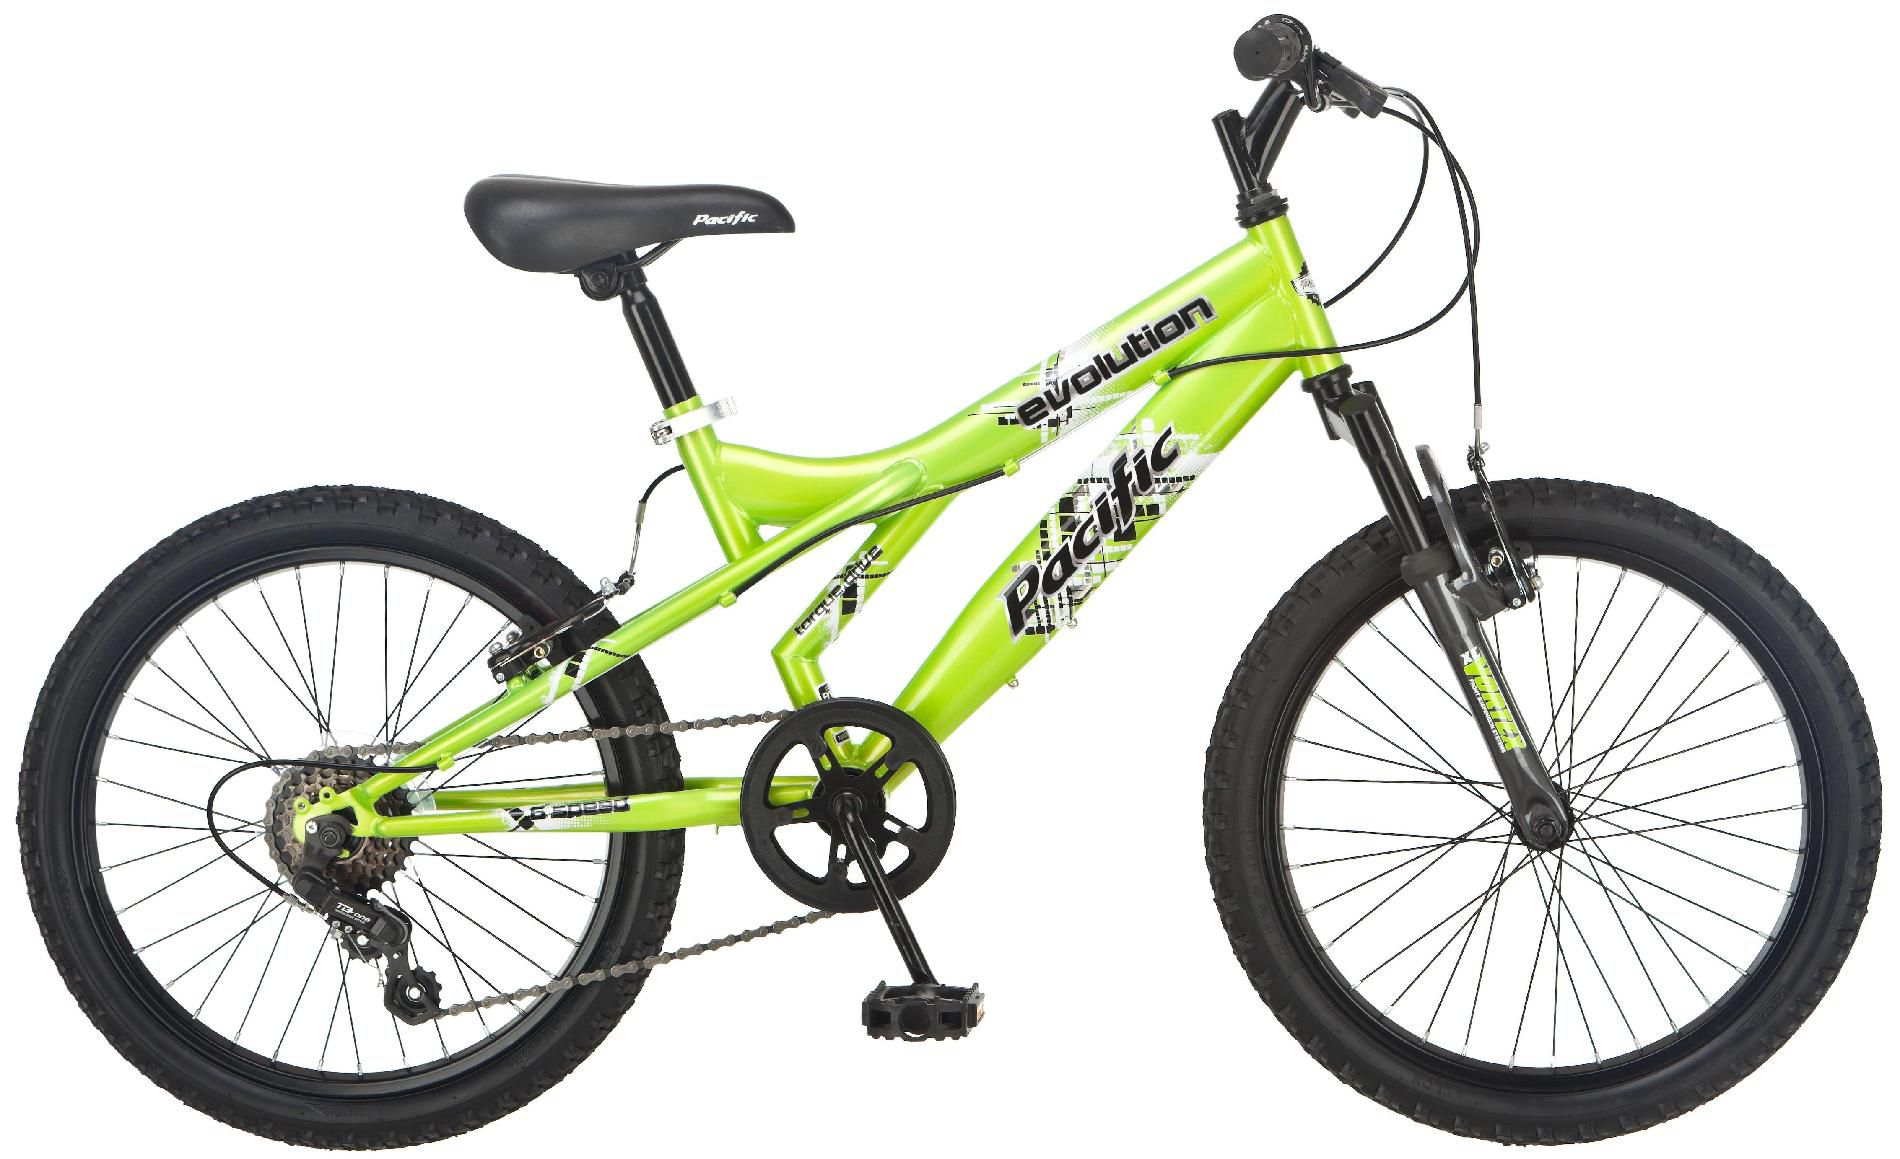 Pacific Evolution 20 Inch Boy's Mountain Bike